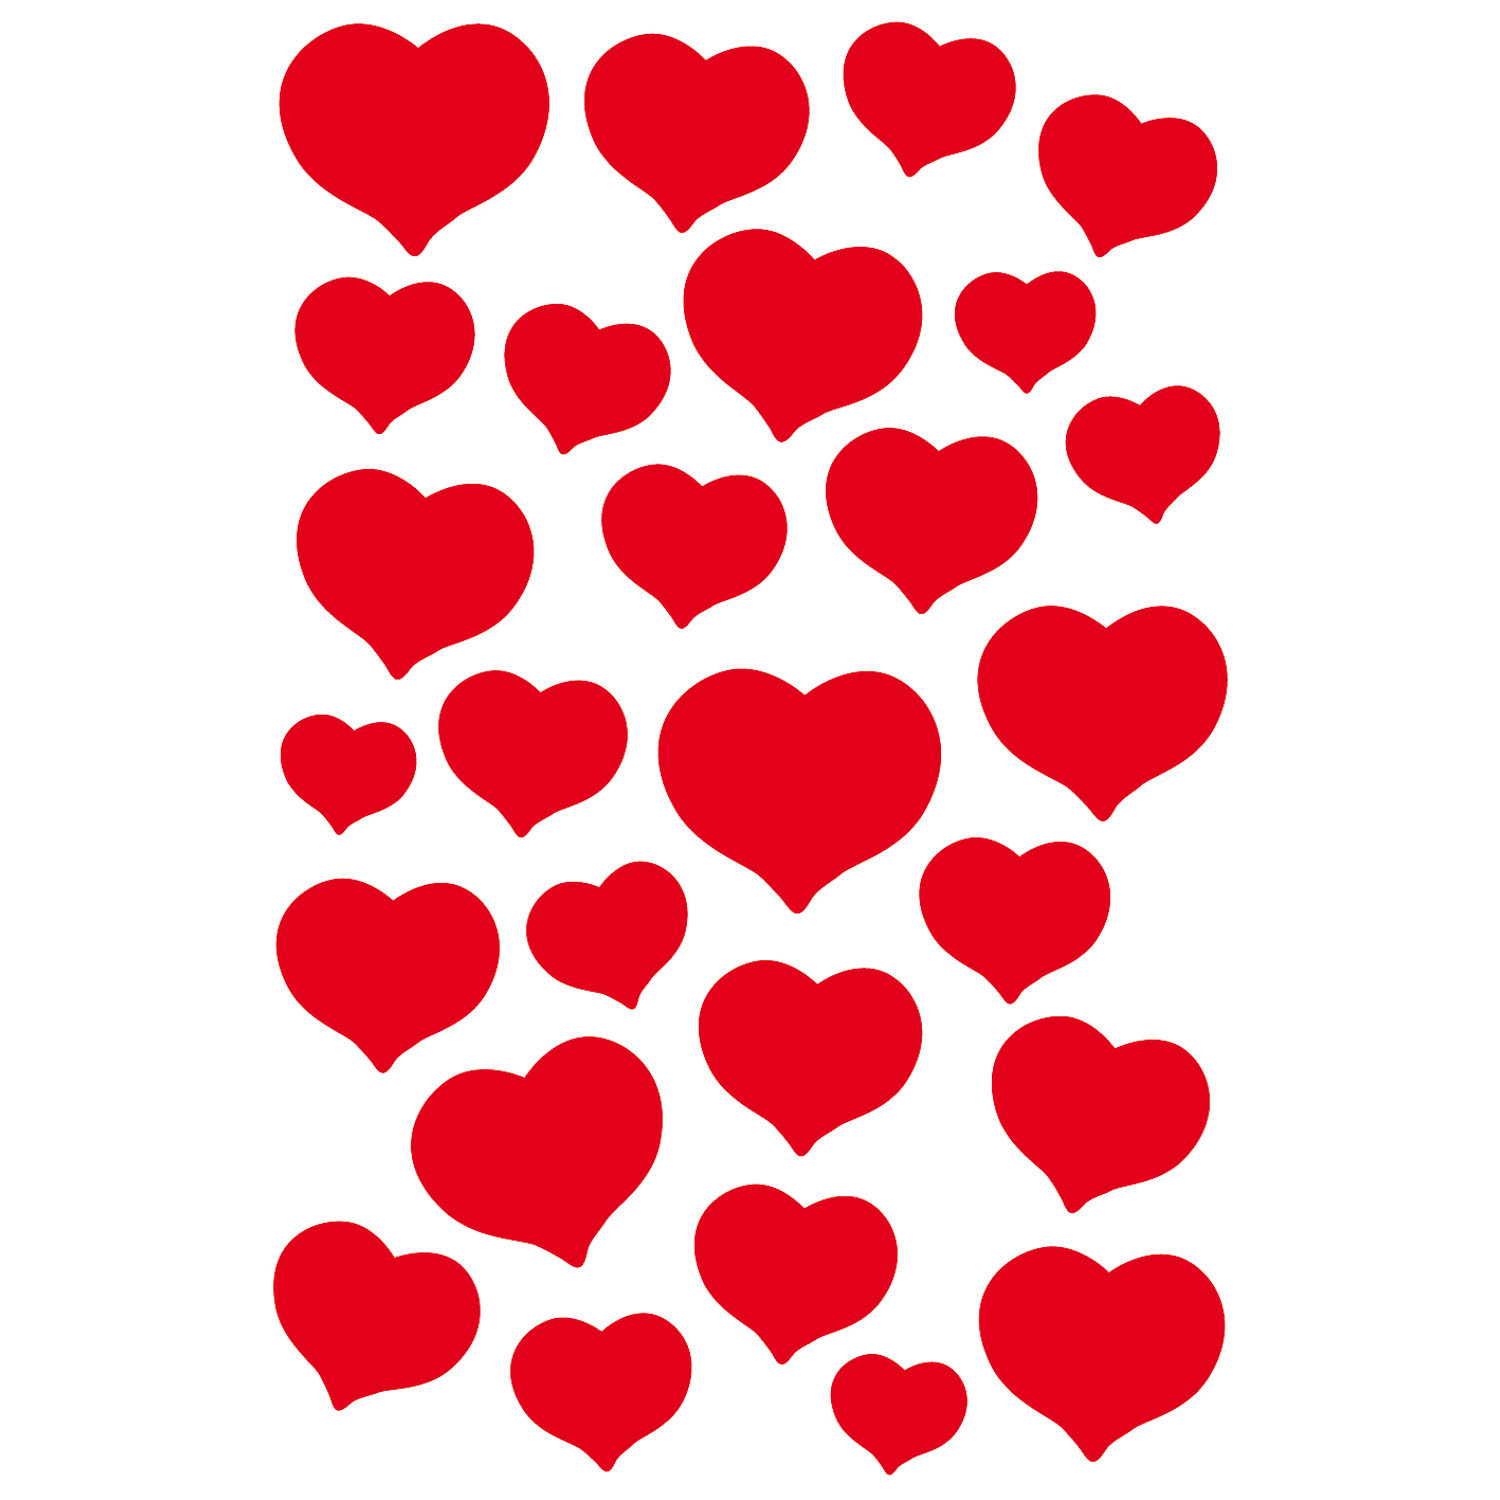 16 images of red hearts free cliparts that you can download to you ...